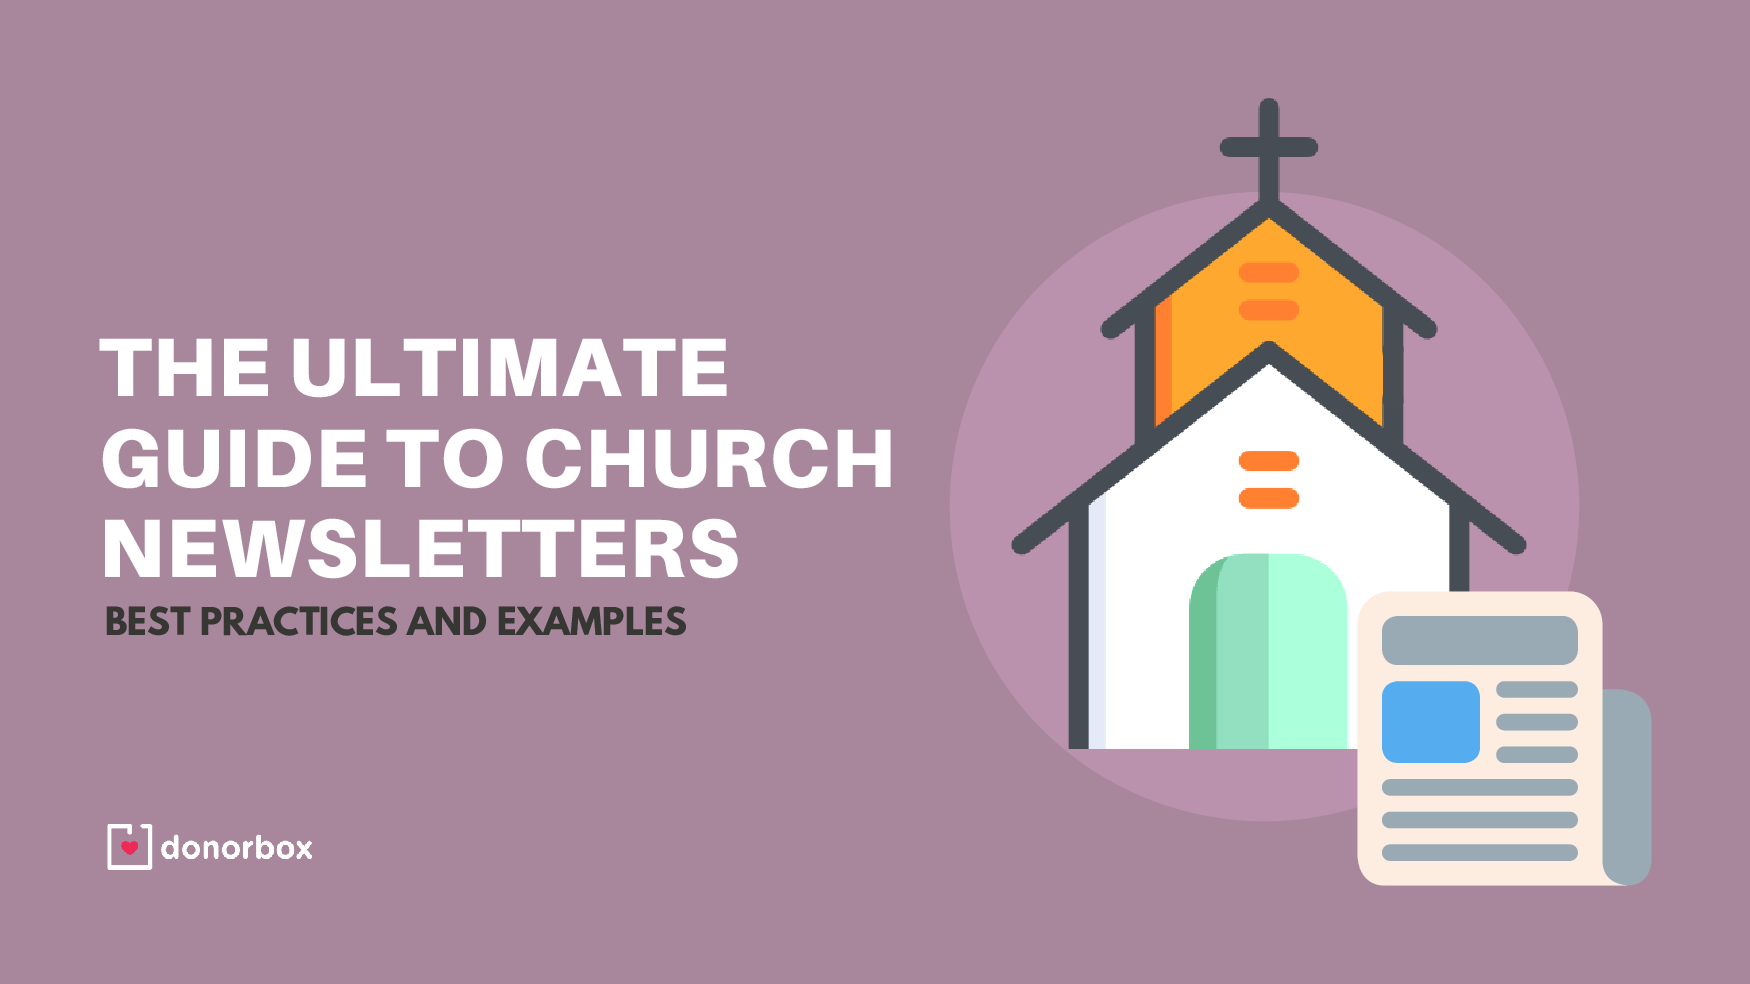 The Ultimate Guide to Church Newsletters: Best Practices and Examples